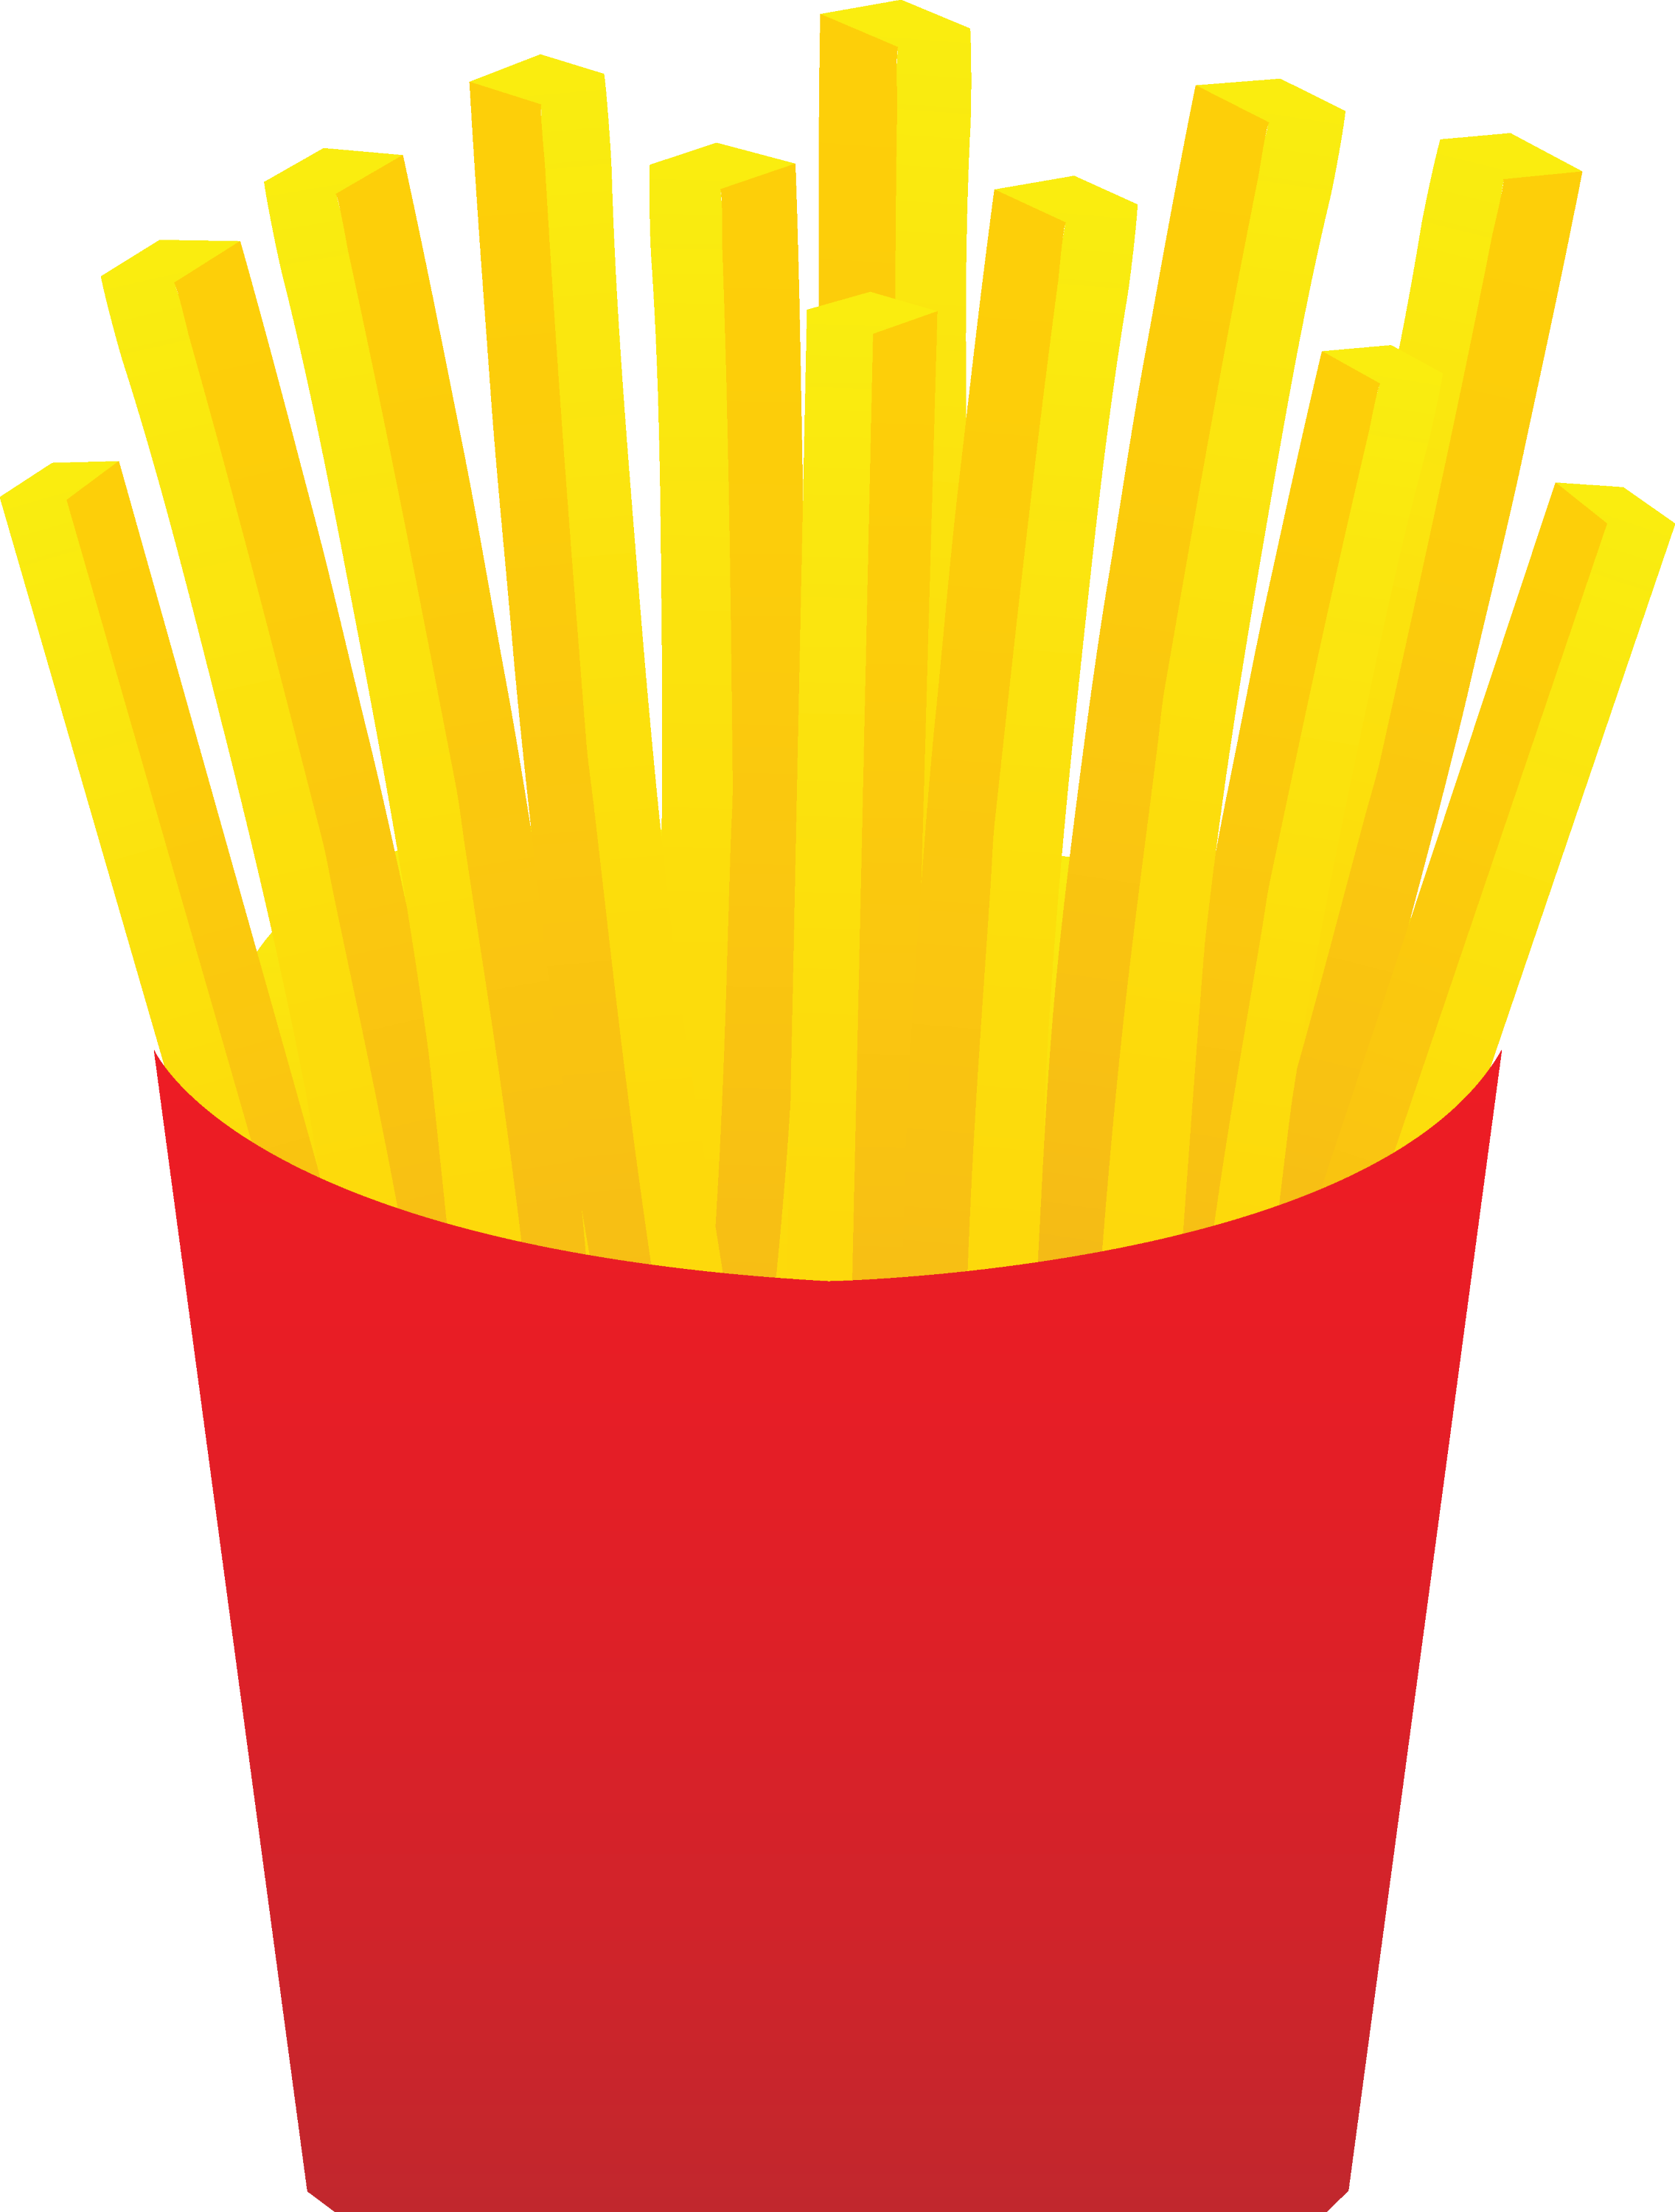 Animated french fries - photo#4